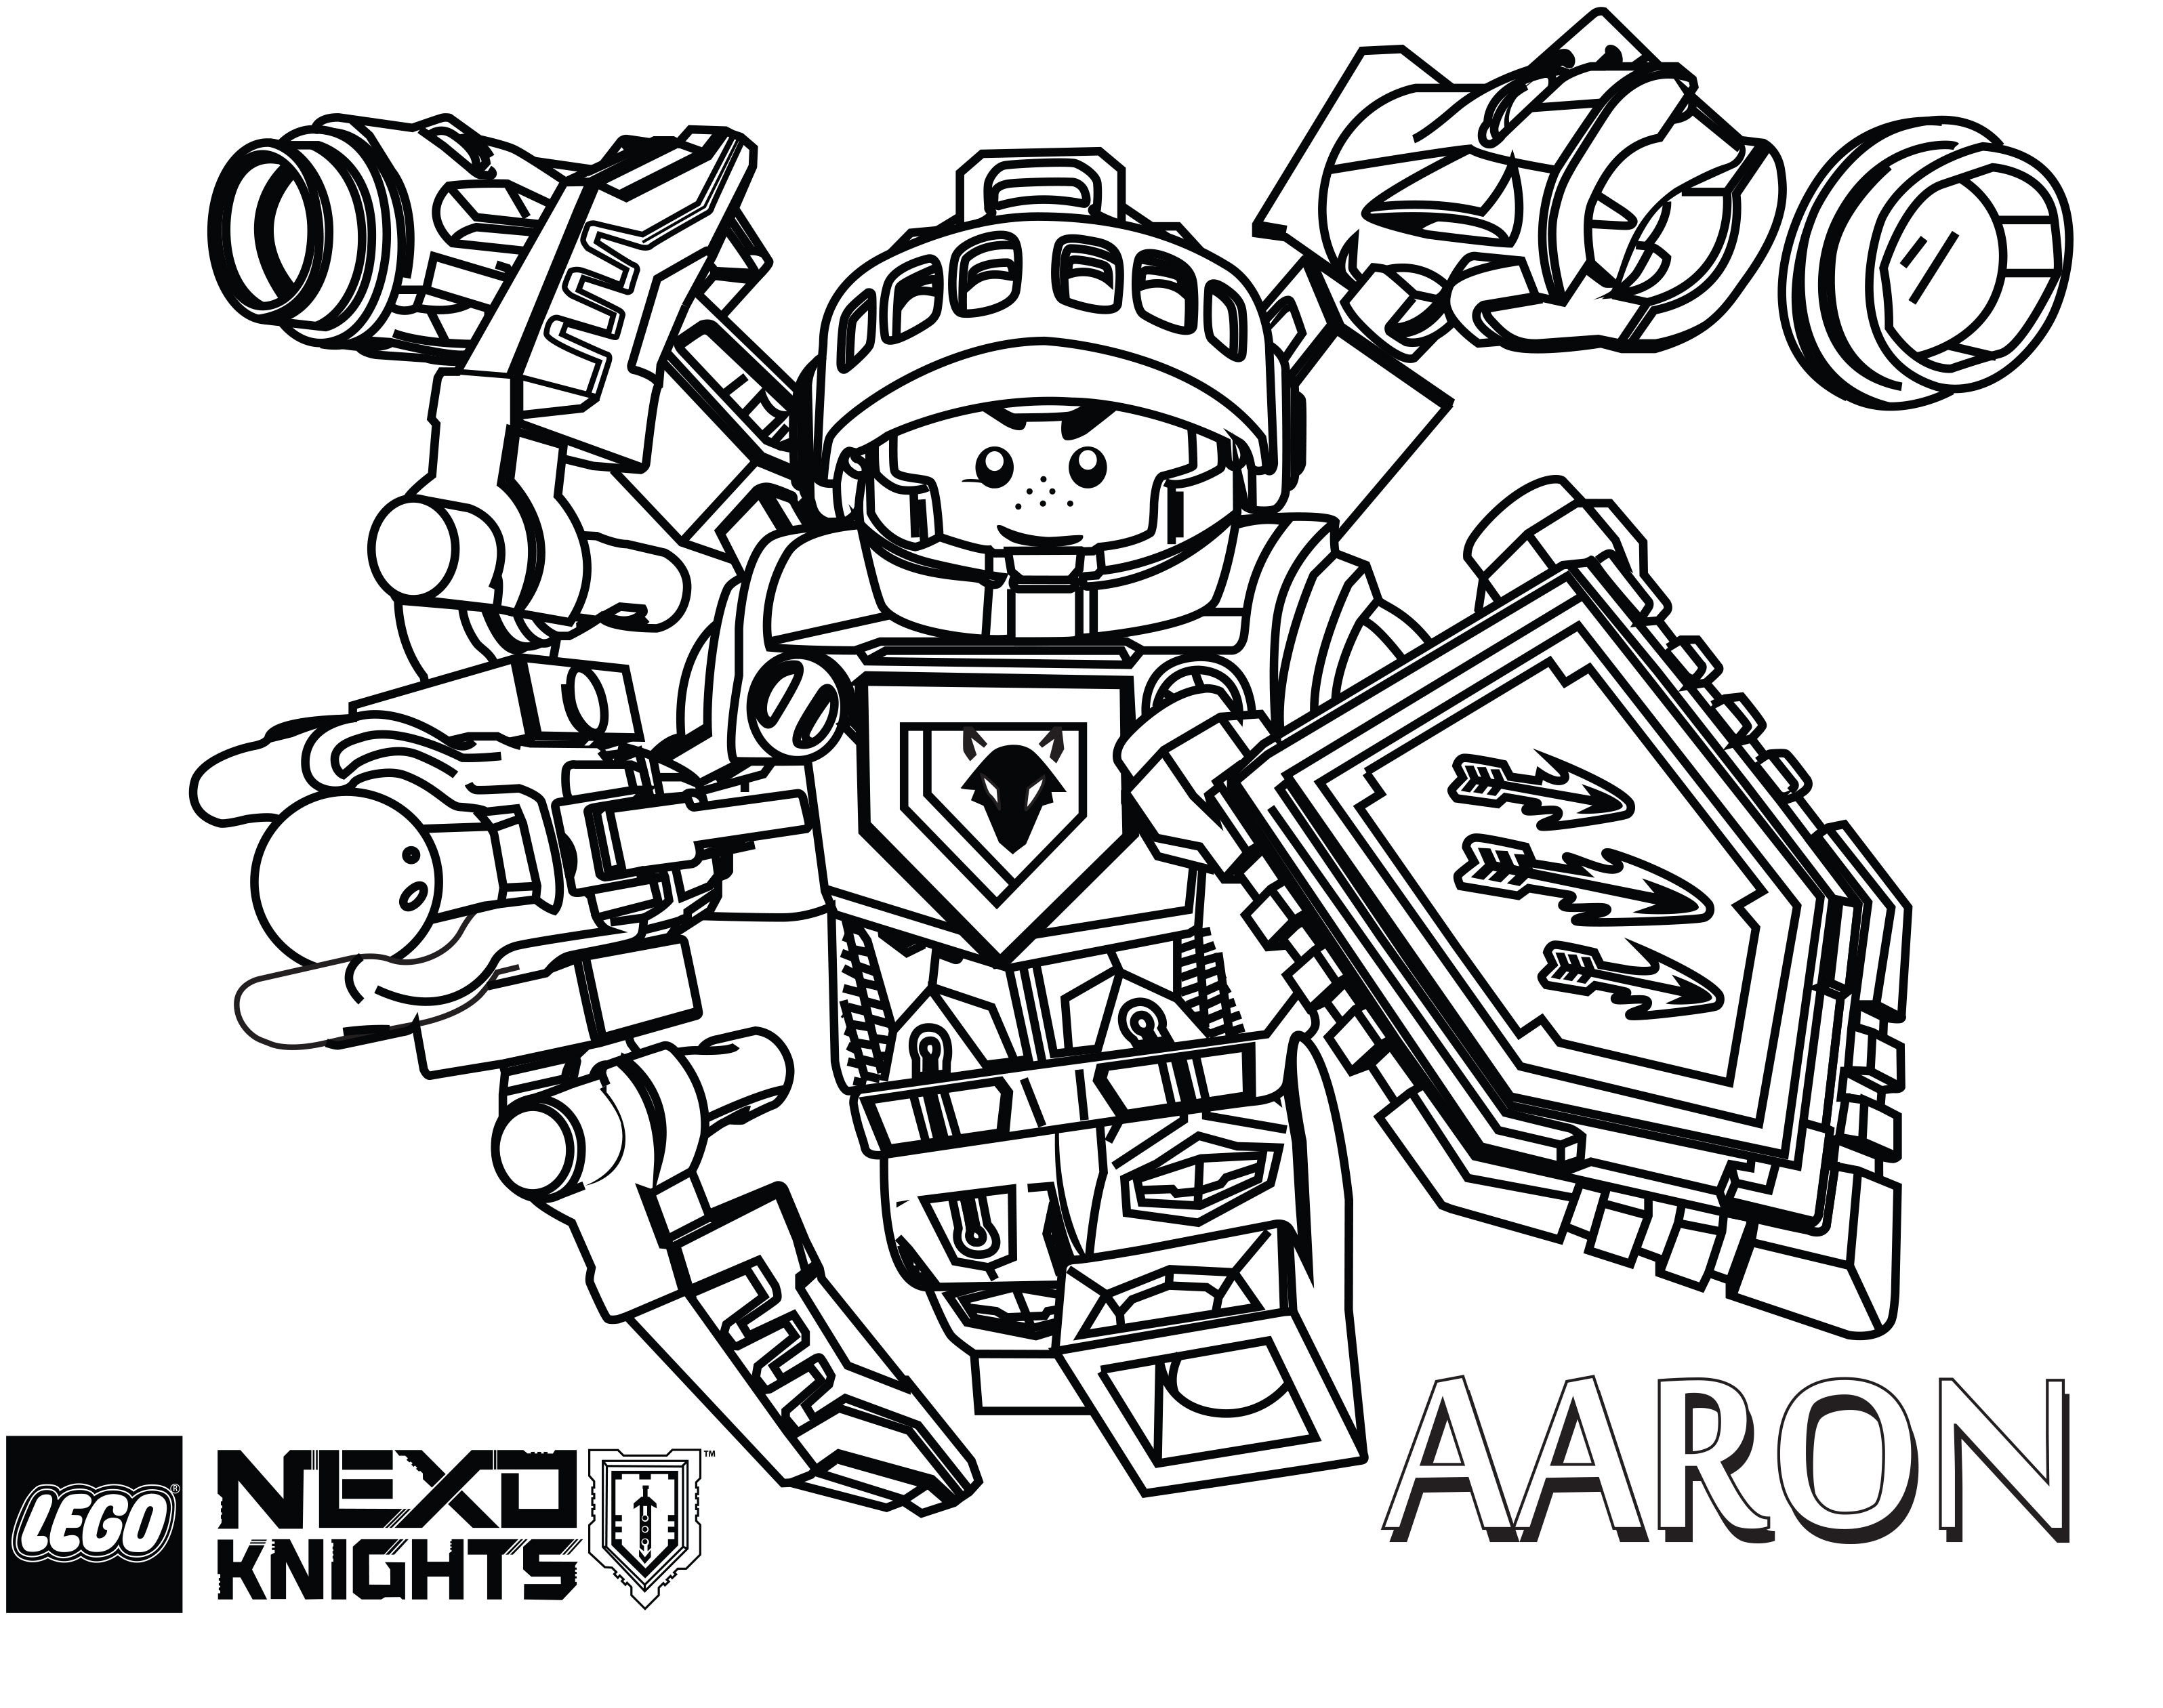 Nexo Knights Coloring Pages - Lego Nexo Knights Clay Coloring Pages Coloring Pages